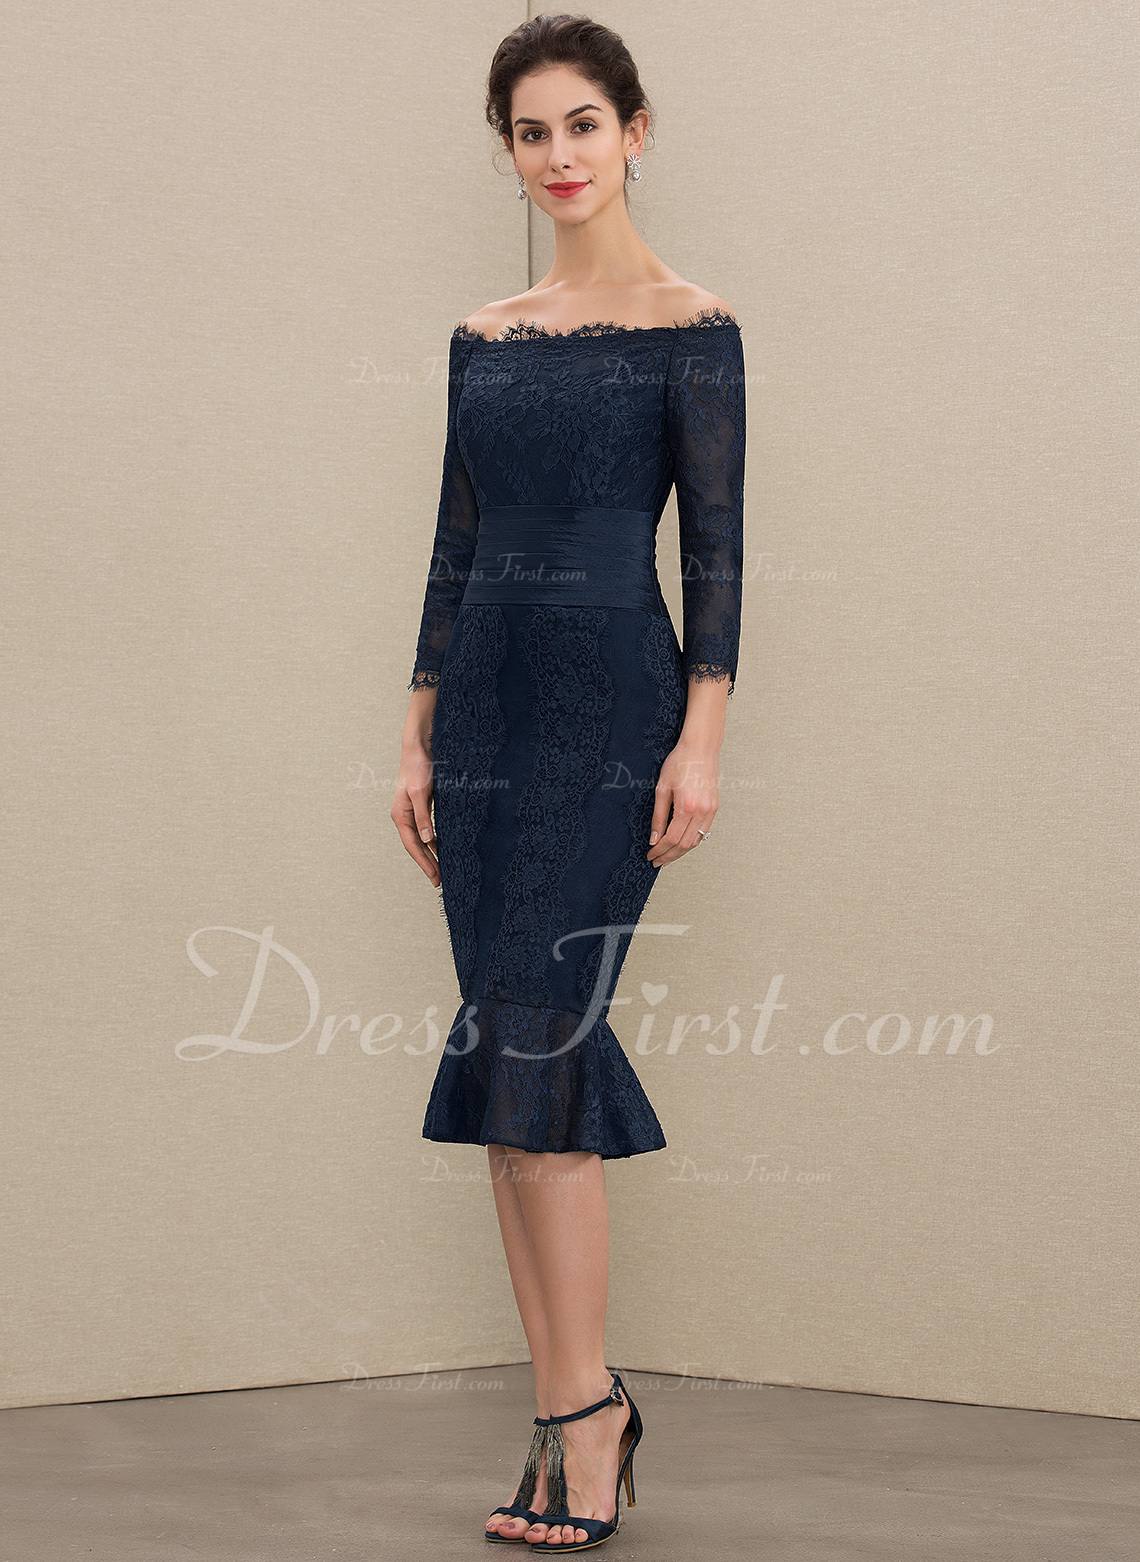 c9d2a4fabd1 Trumpet Mermaid Off-the-Shoulder Knee-Length Lace Mother of the Bride Dress   179212